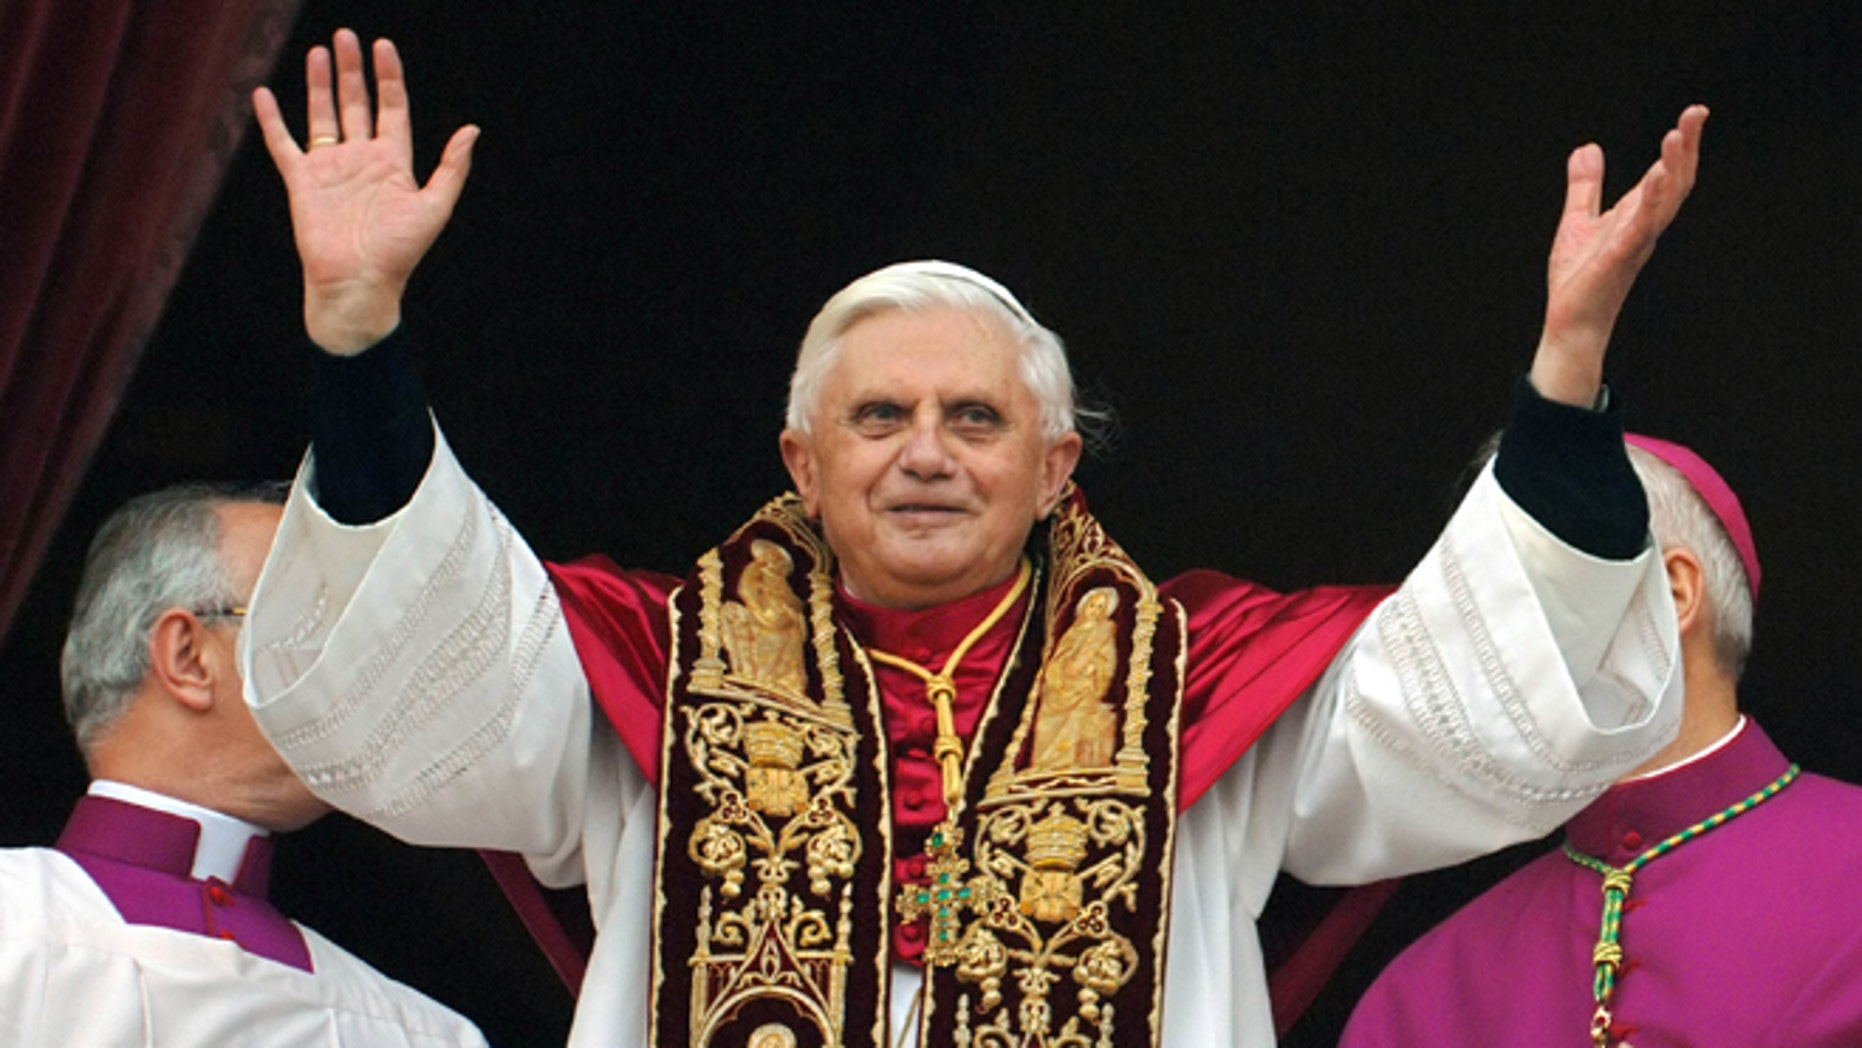 April 19, 2005: Pope Benedict XVI greeting the crowd from the central balcony of St. Peter's Basilica moments after being elected, at the Vatican. On Monday, Benedict XVI announced he would resign Feb. 28, the first pontiff to do so in nearly 600 years. The decision sets the stage for a conclave to elect a new pope before the end of March. (AP)